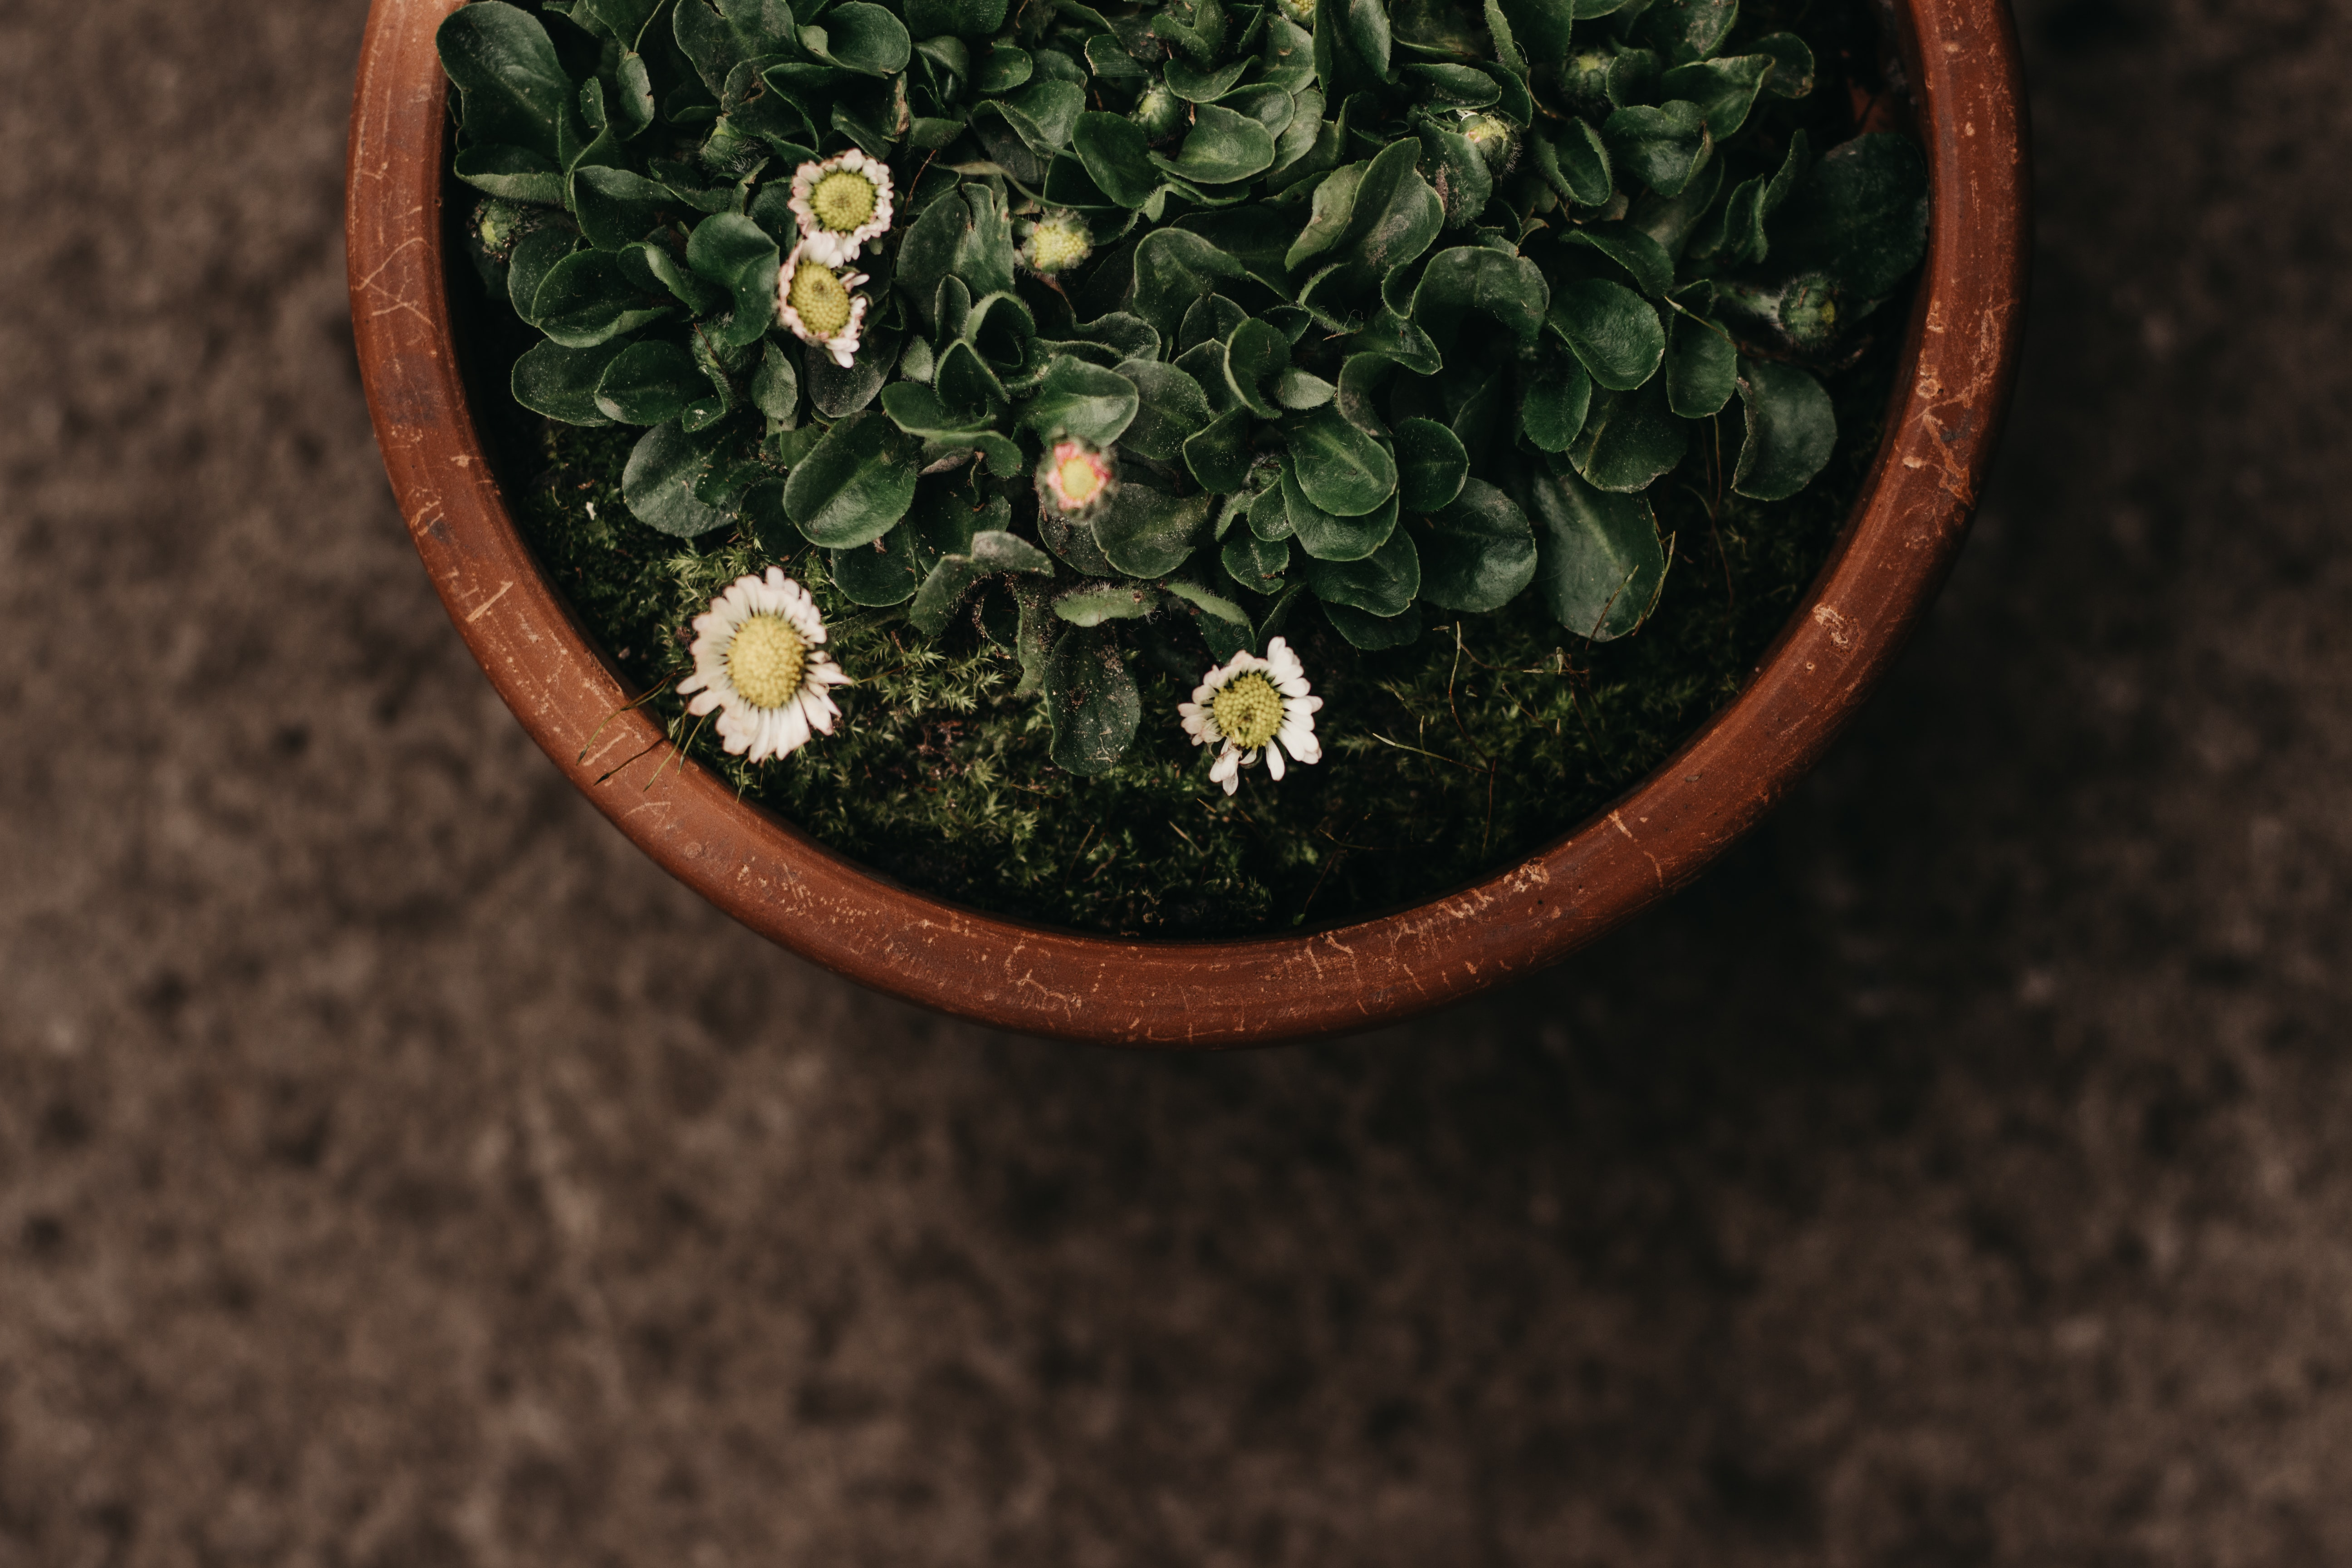 top view photography of white daisy flowers in pot